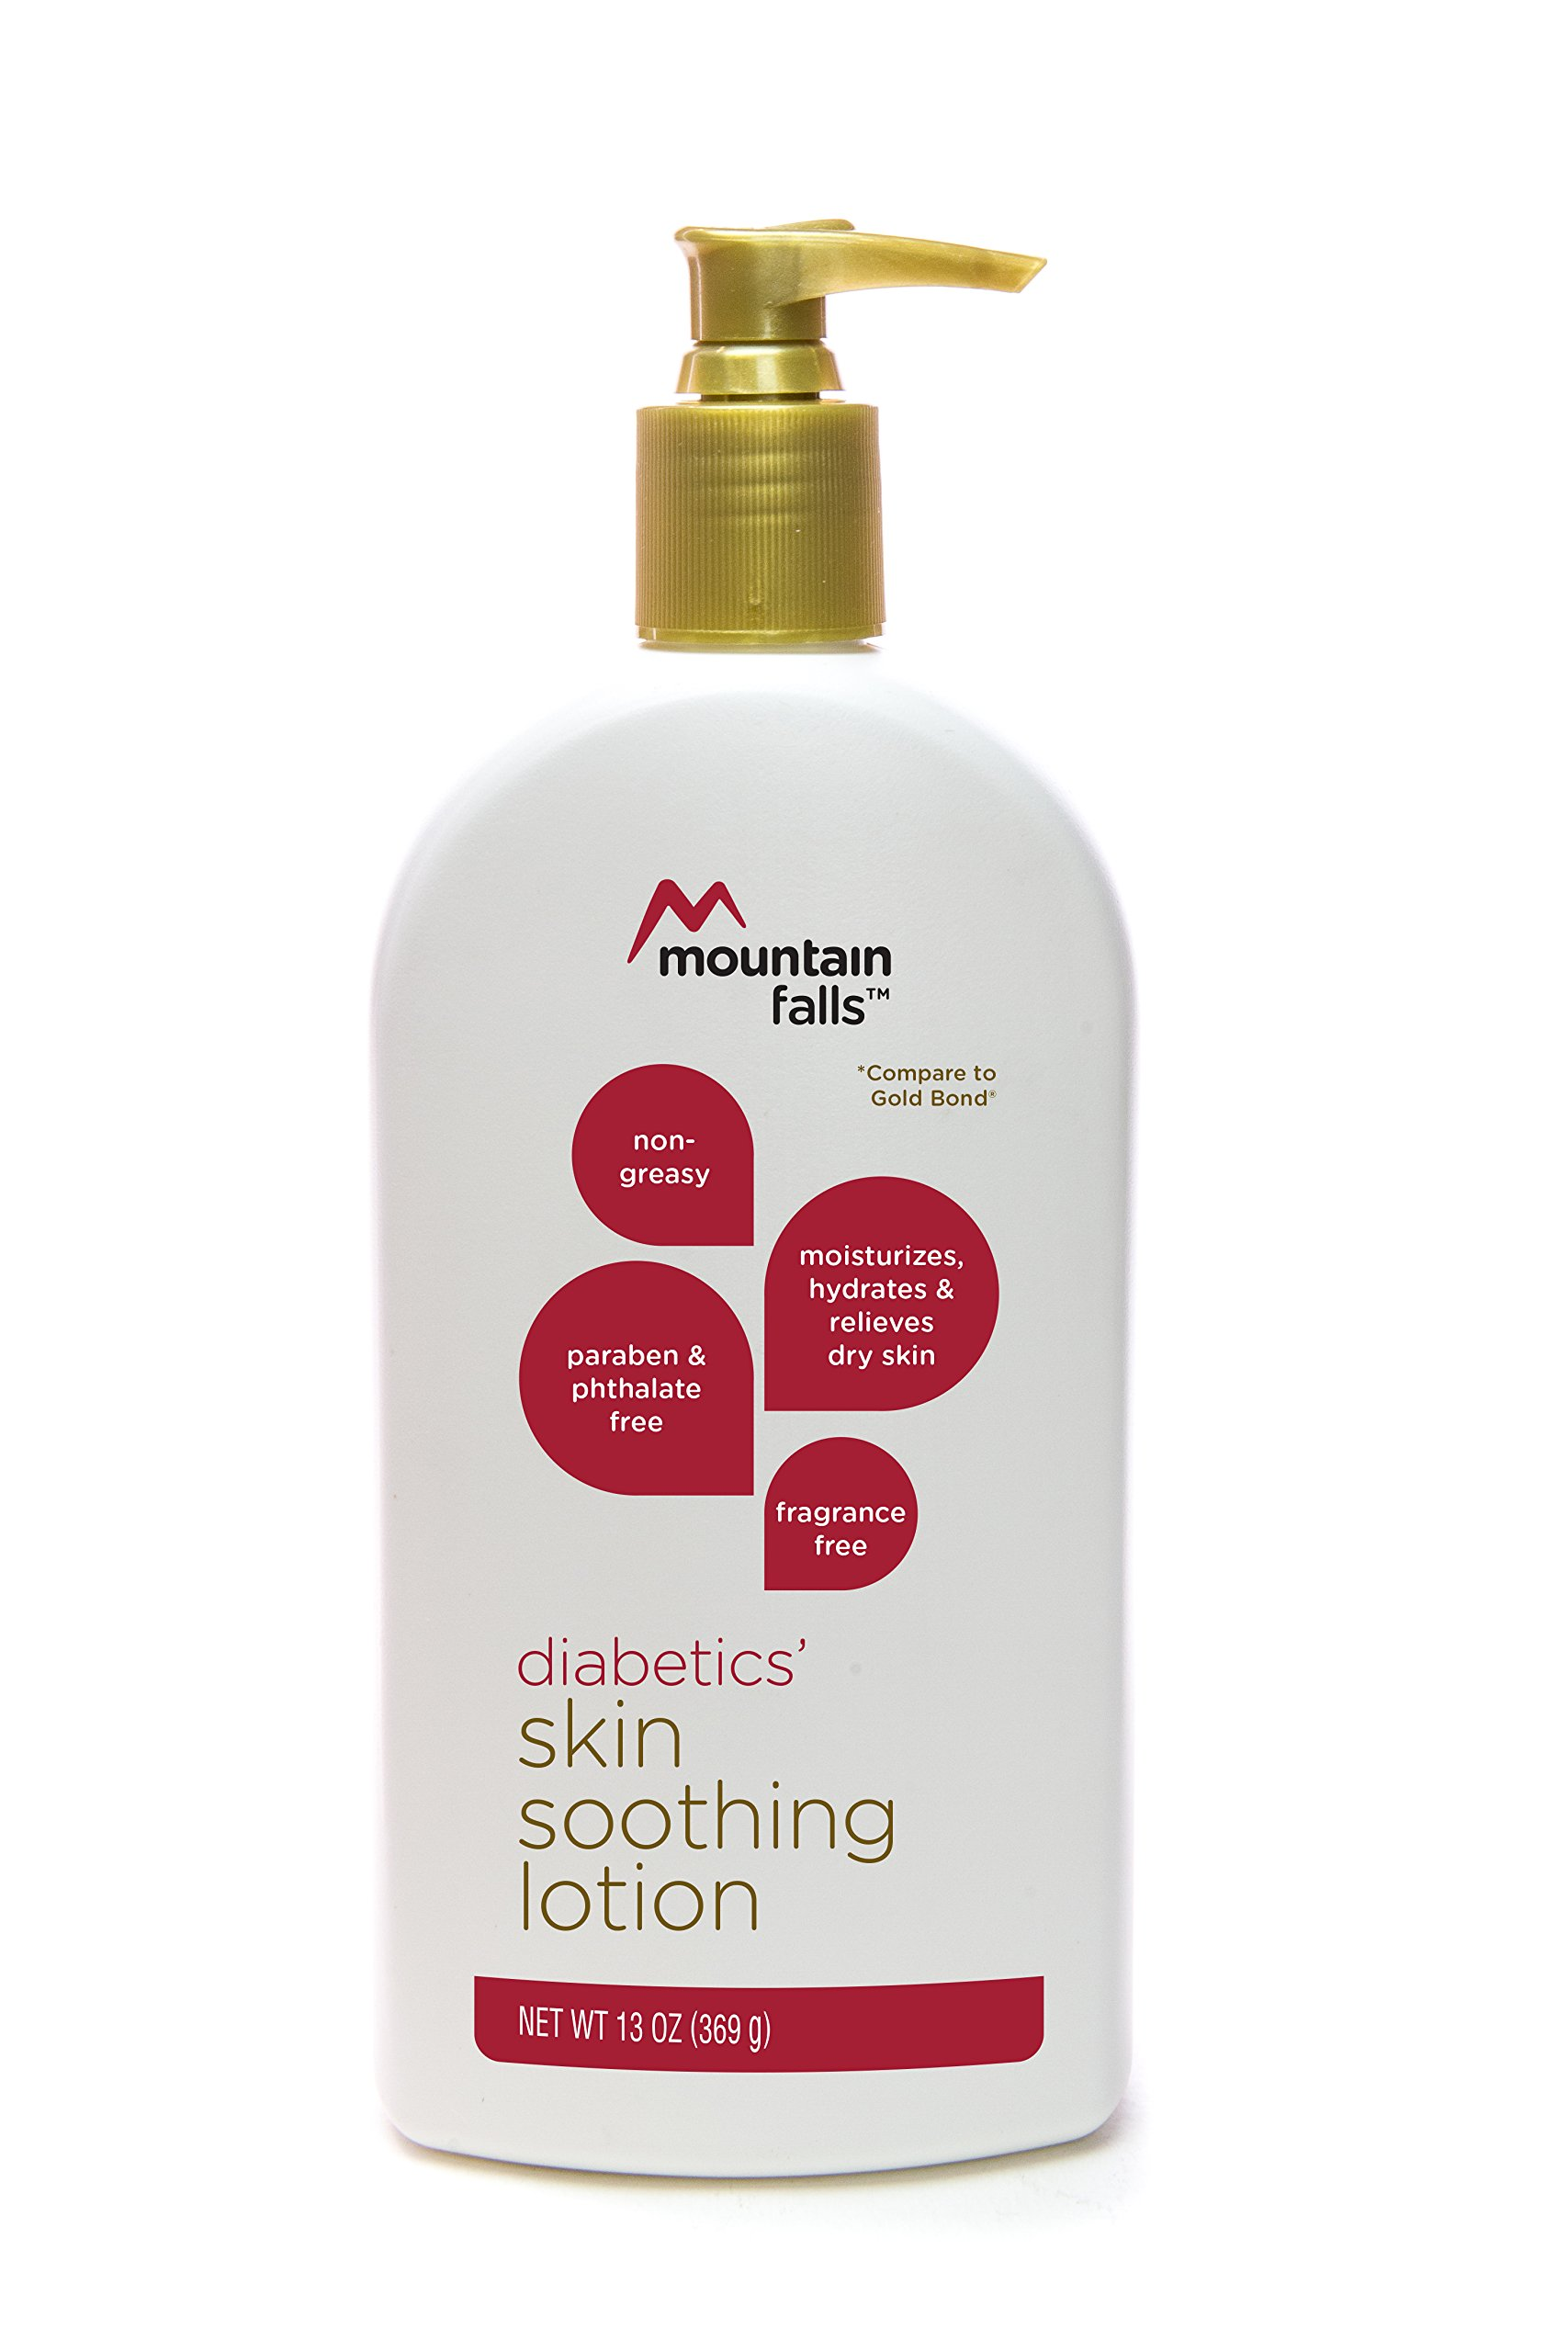 Mountain Falls Moisturizing Diabetics' Skin Soothing Lotion for Dry Skin, Fragrance-free, Non-greasy, Compare to Gold Bond, 13 Ounce